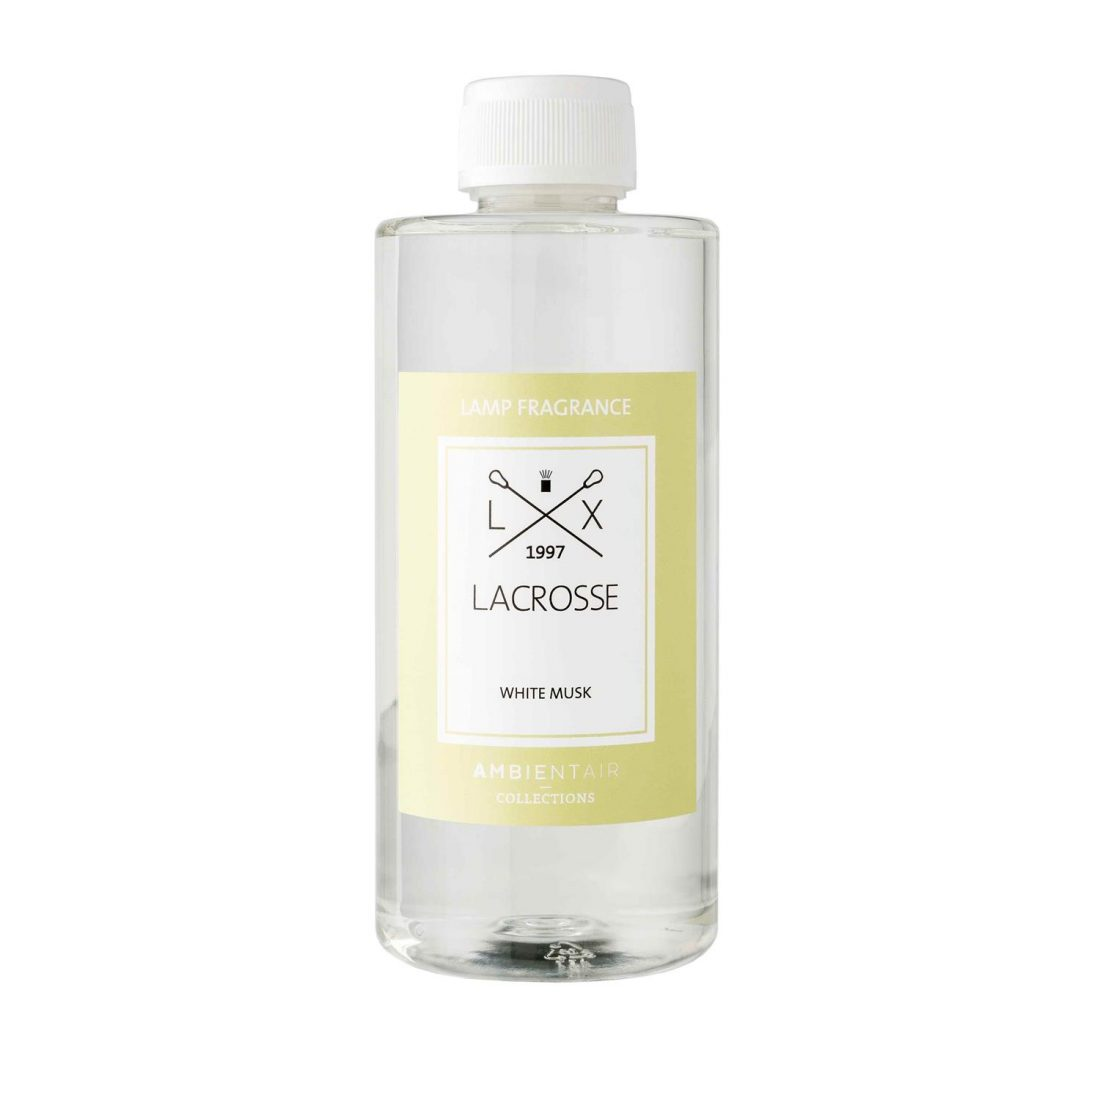 Lc500mblc Lamp Fragrance White Musk 8435474406683 Lacrosse [ambientair Collections]